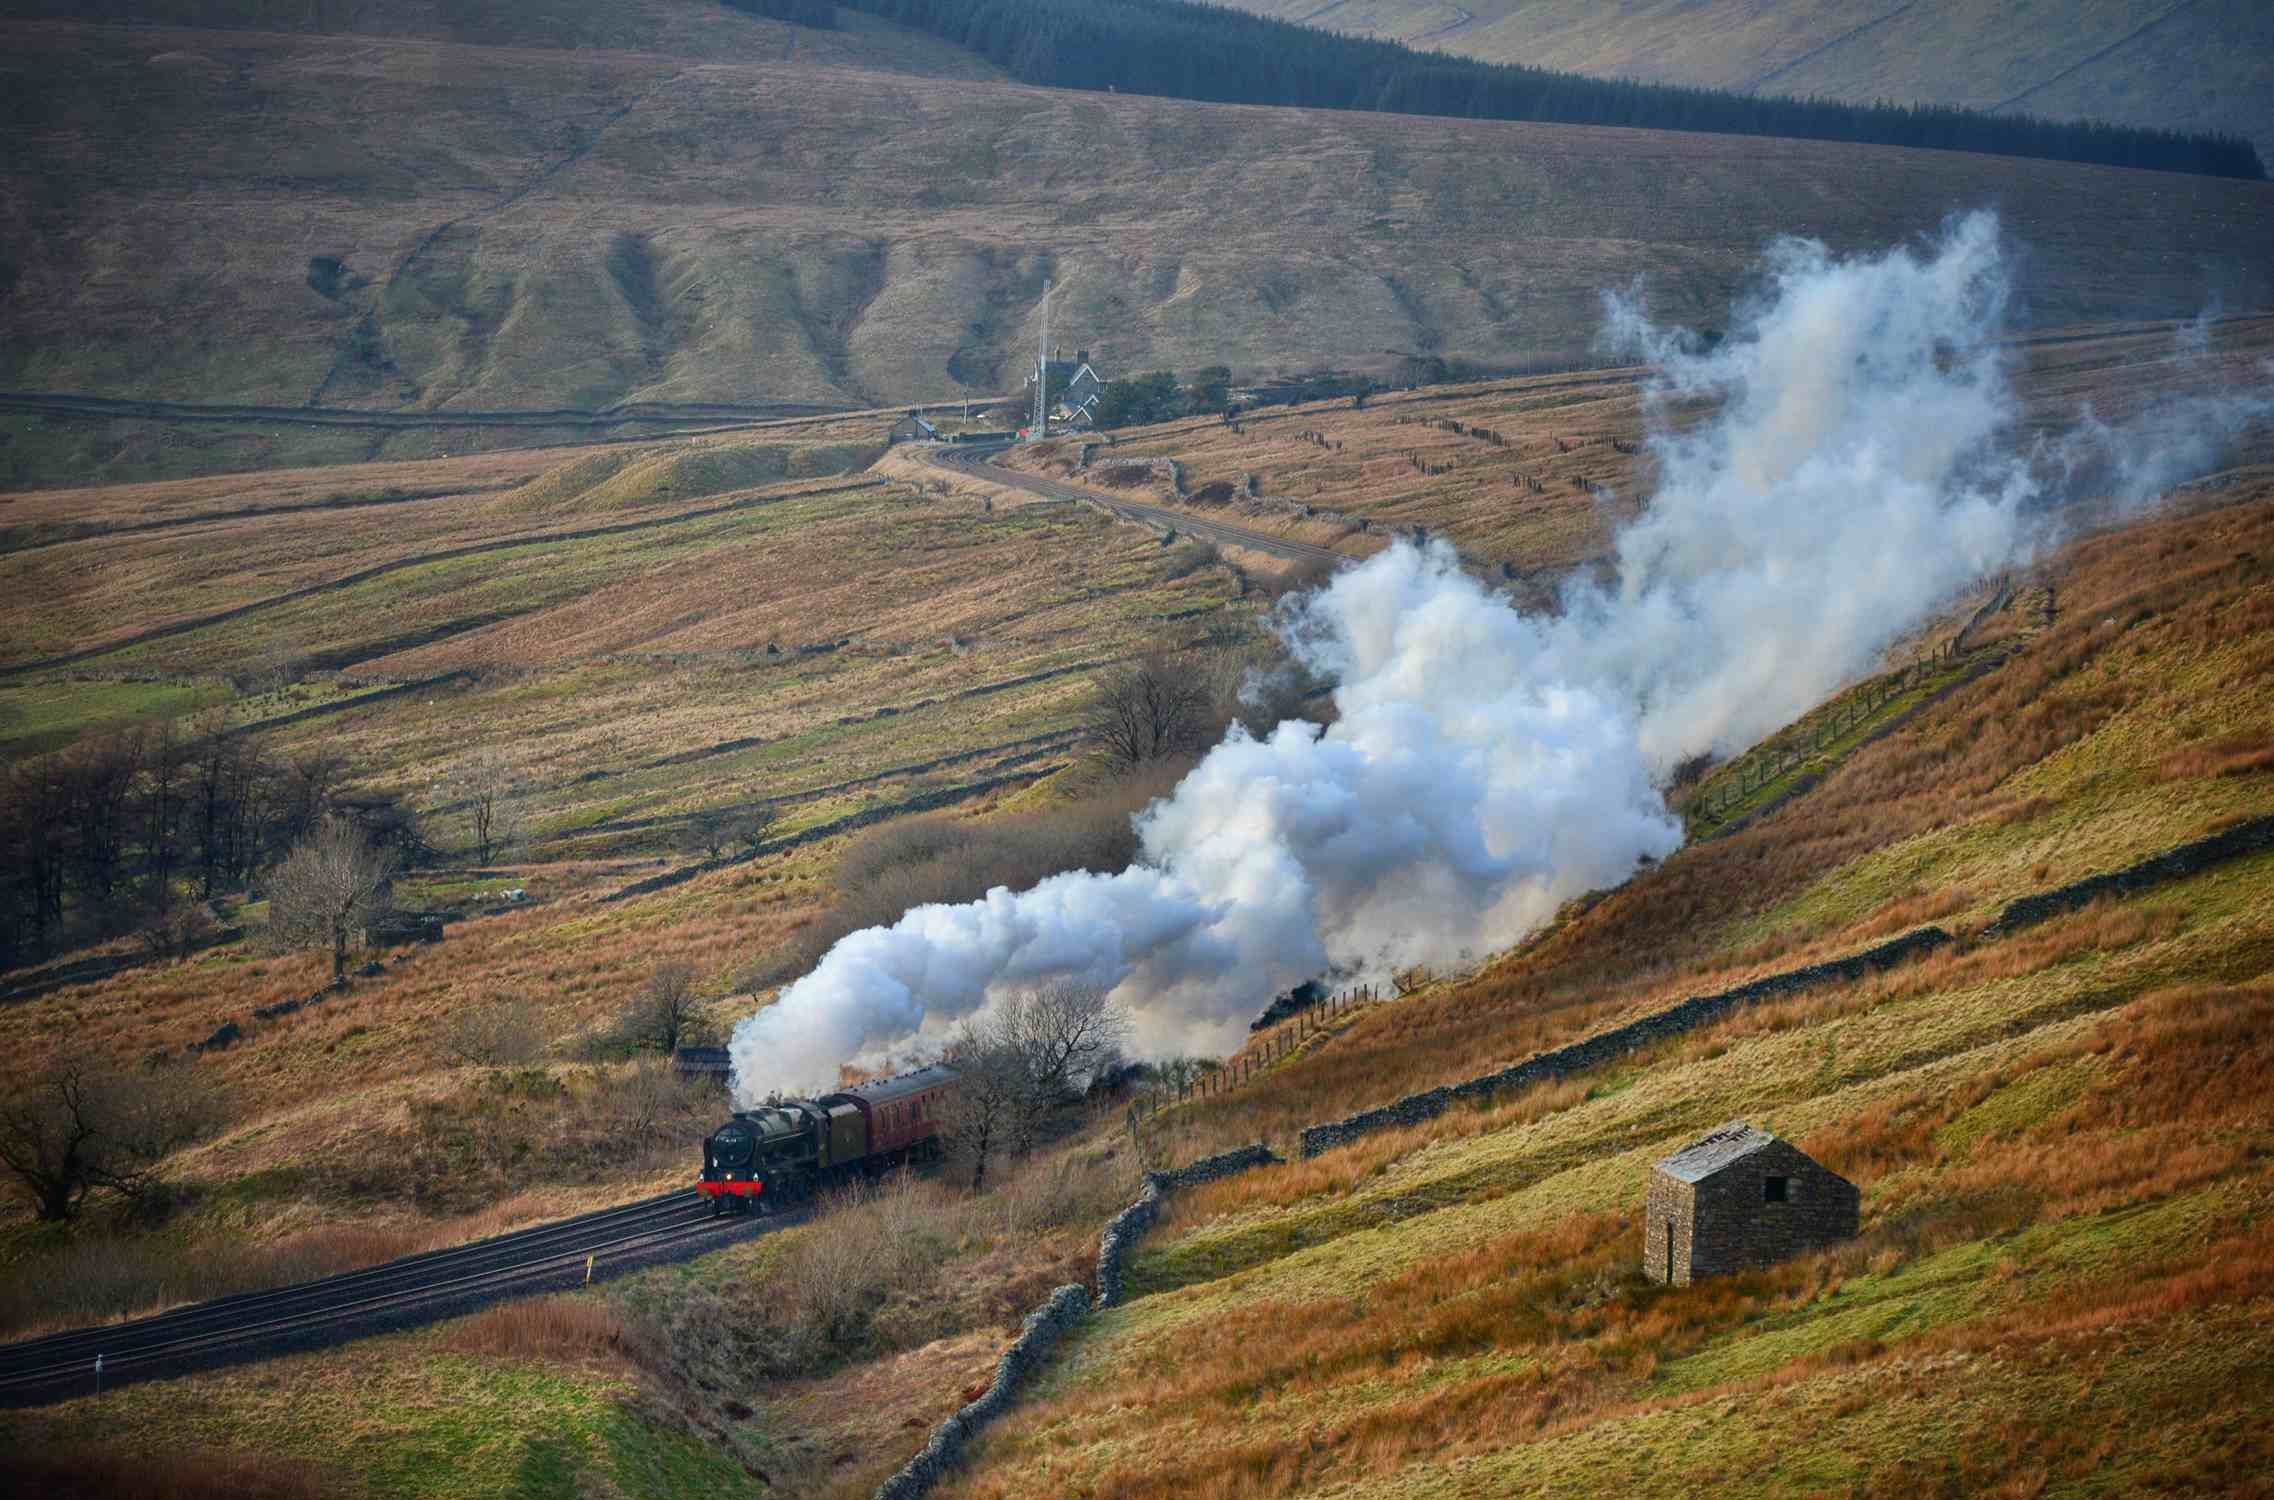 England's once threatened scenic railway enjoys more passengers and freight than ever